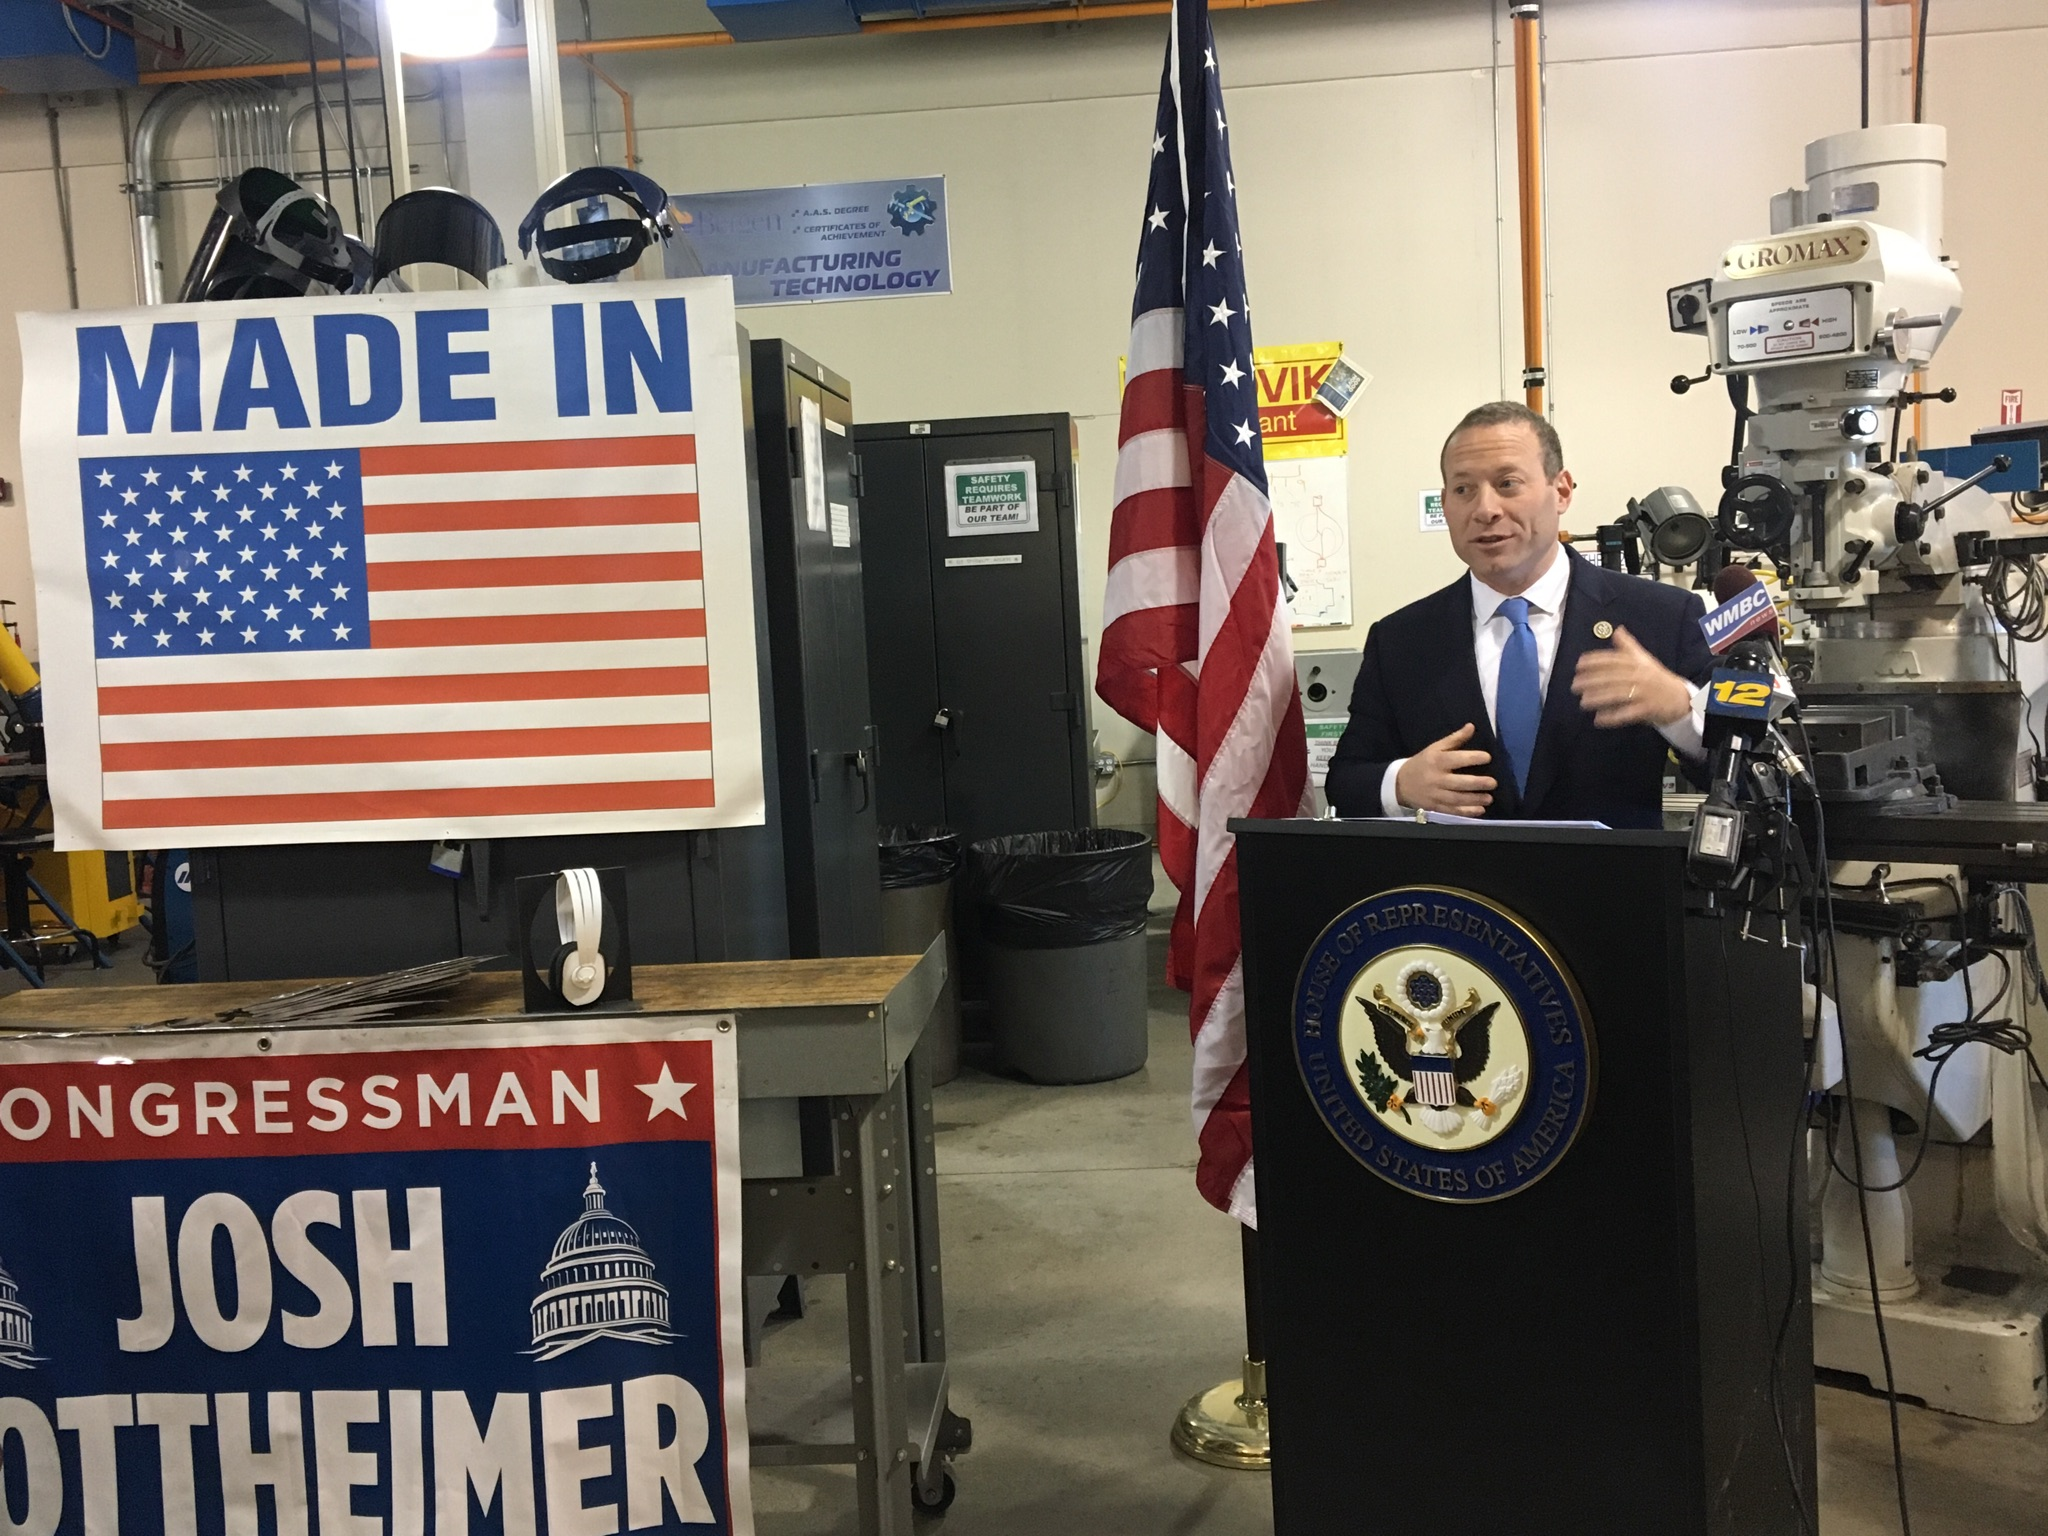 Amazing Below: Congressman Gottheimer Outlines His Vision For Future Technology Jobs  In New Jersey.